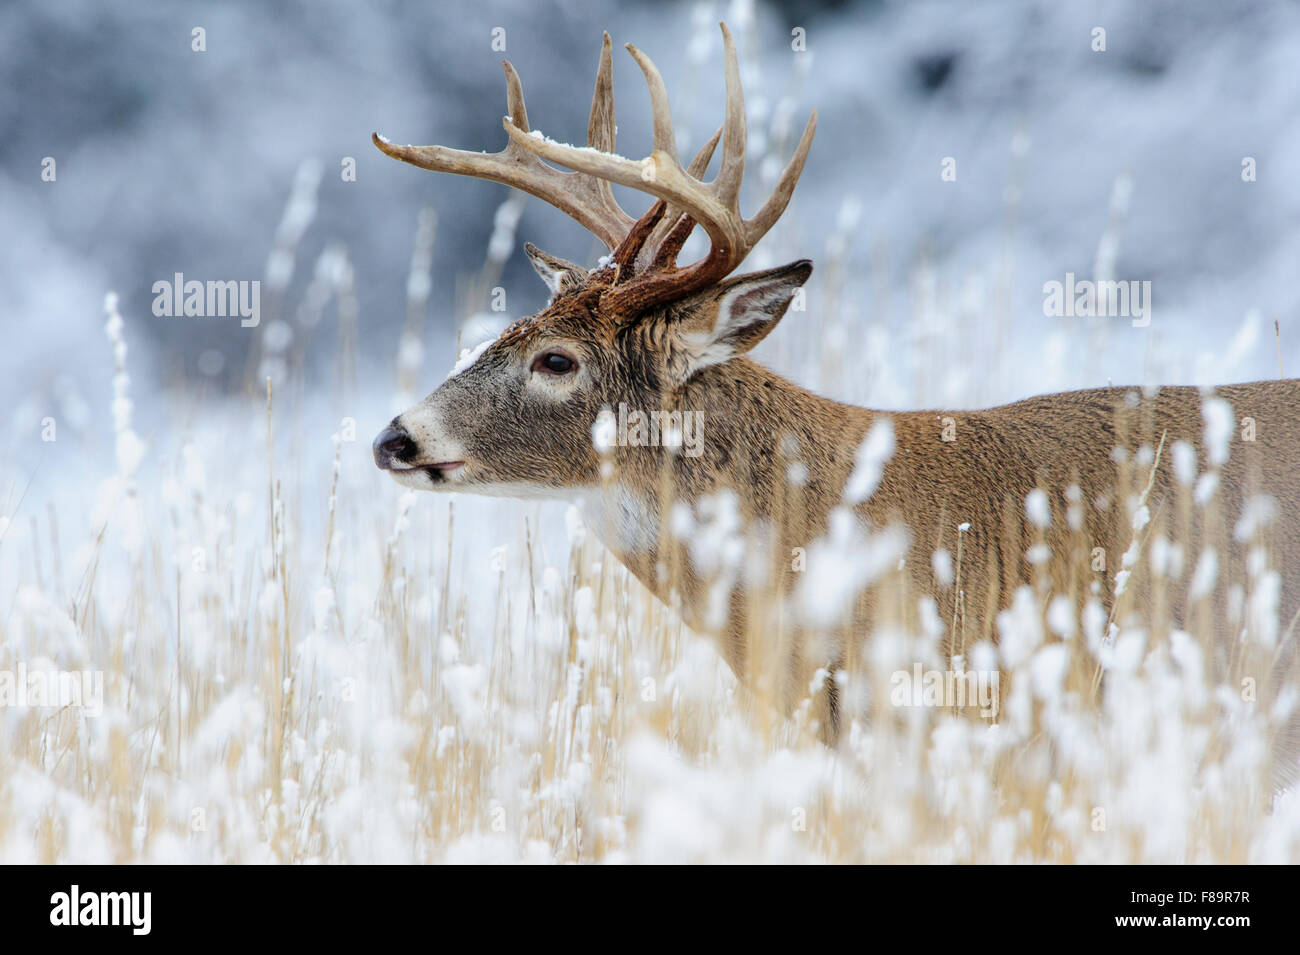 White-tailed deer buck in snow, Western US - Stock Image